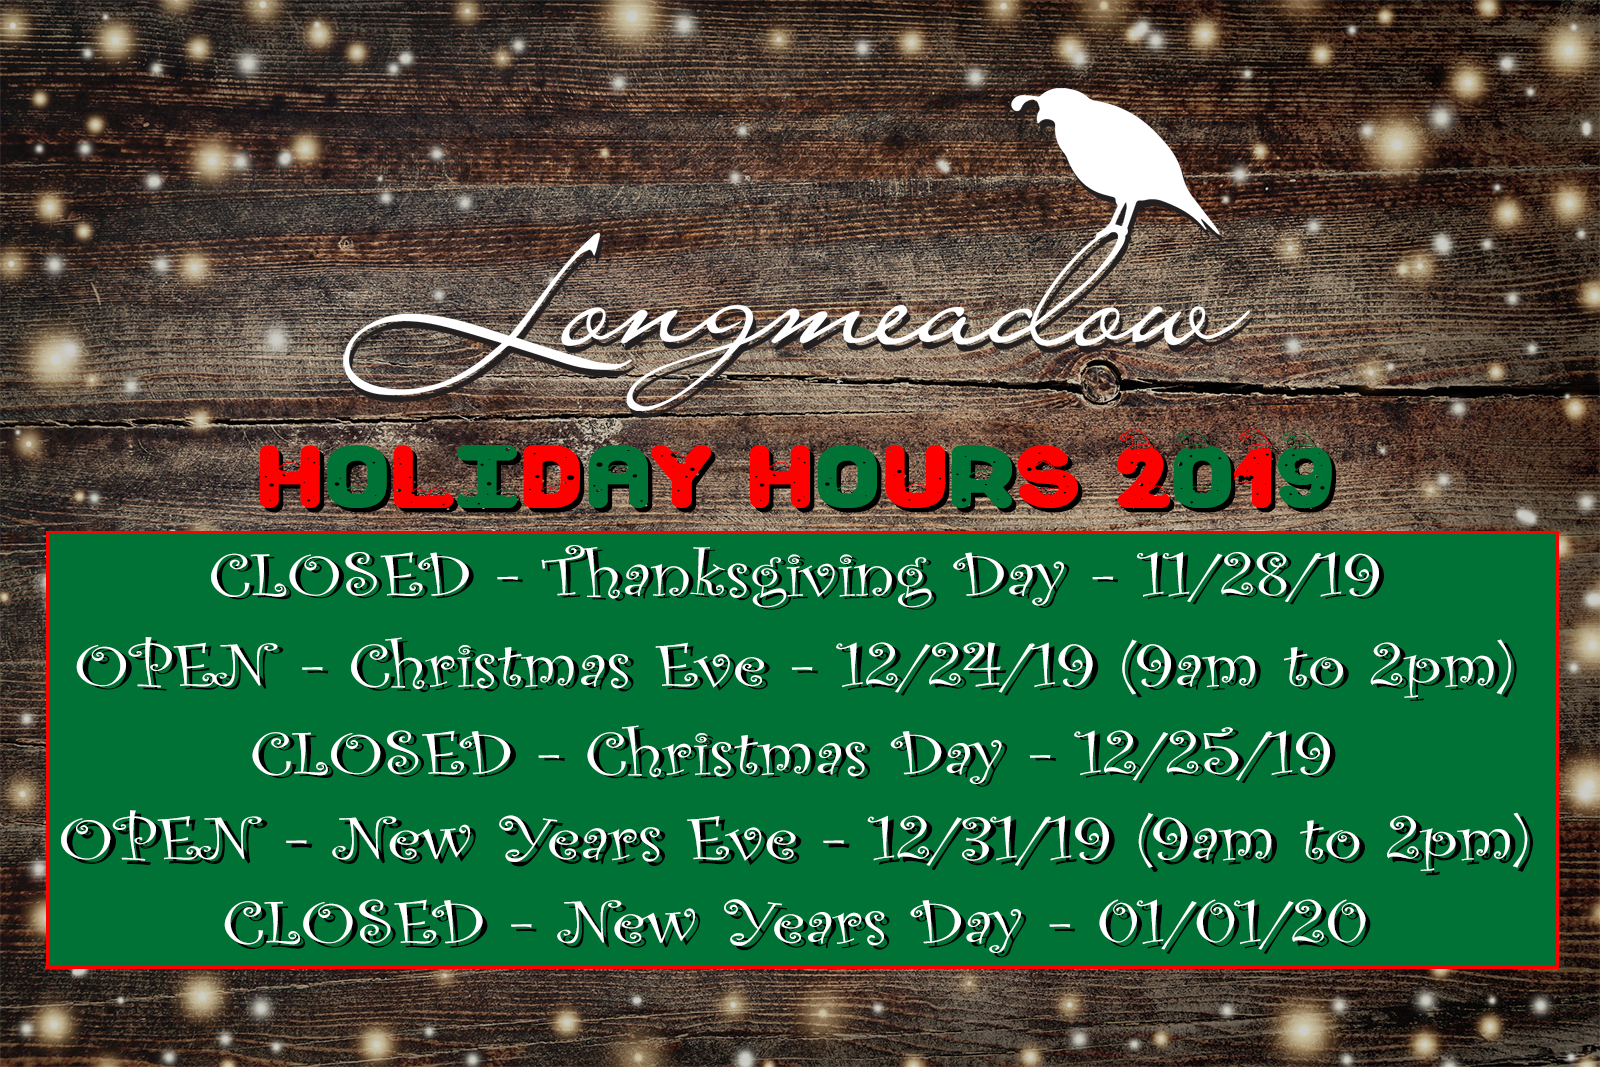 Longmeadow Holiday Hours 2019